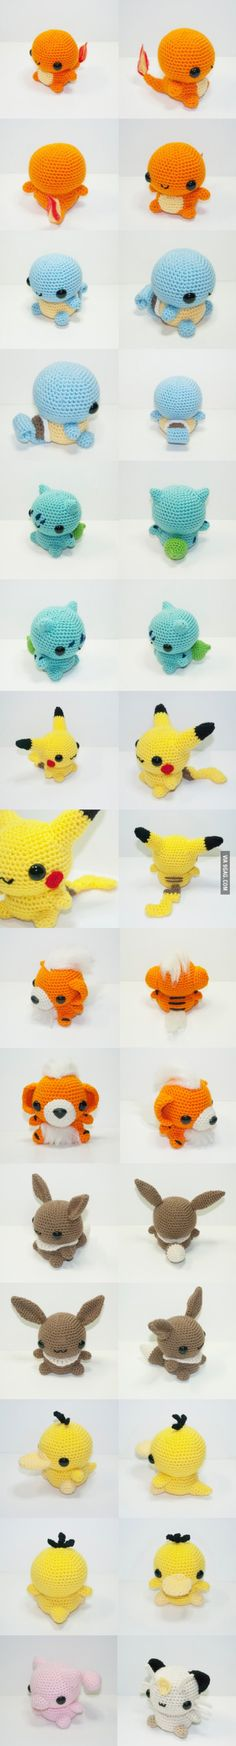 Some knitted Pokémons